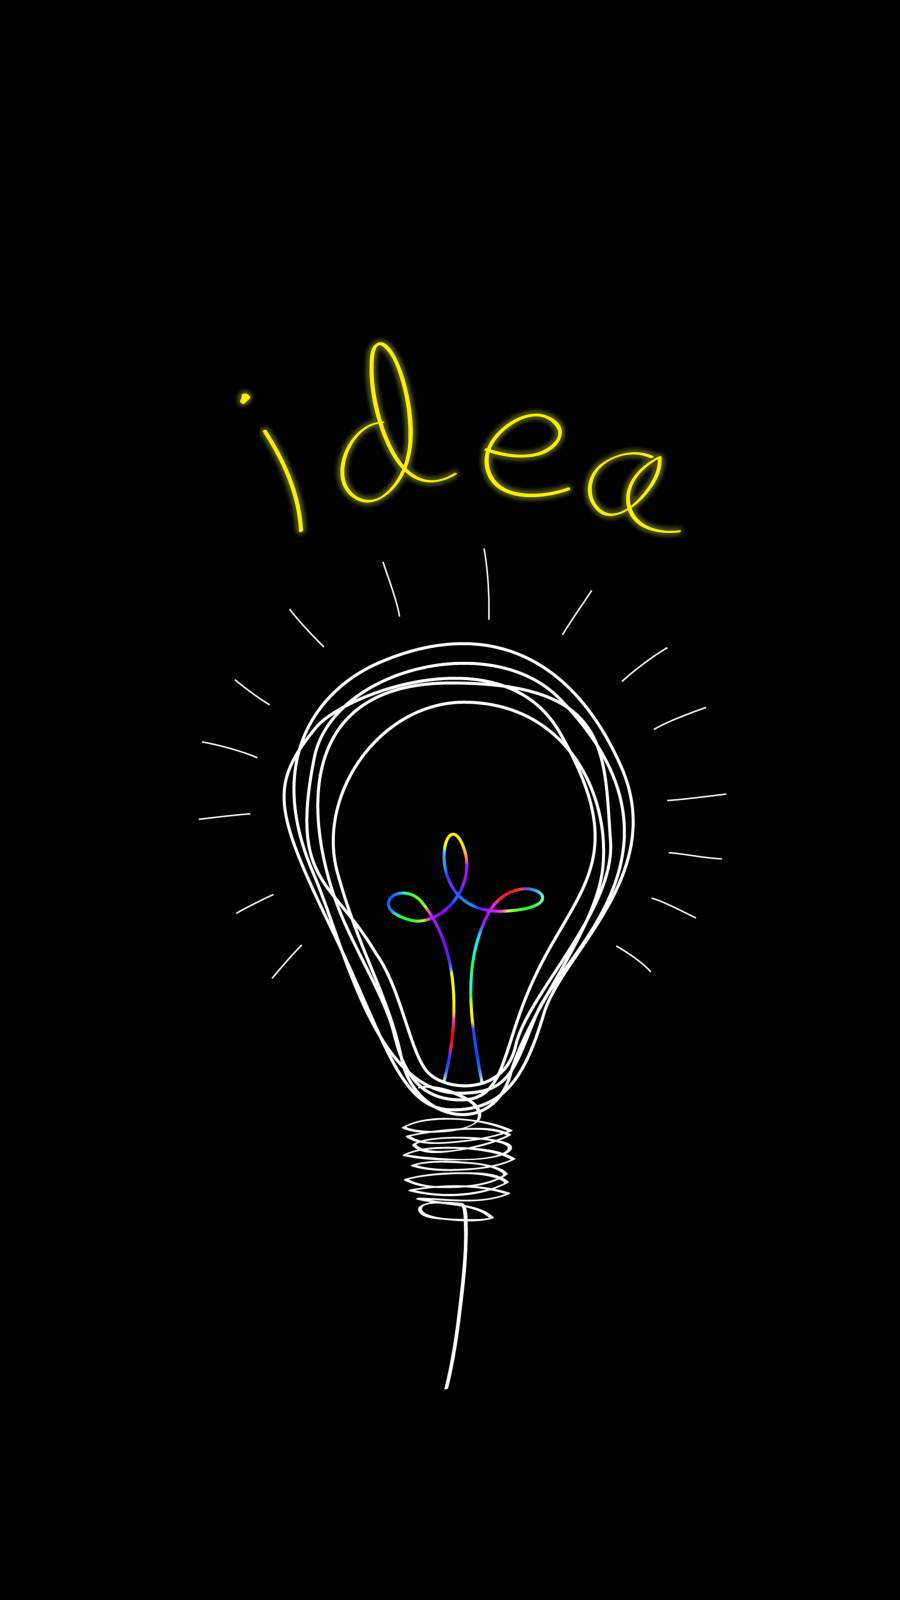 idea iPhone Wallpaper